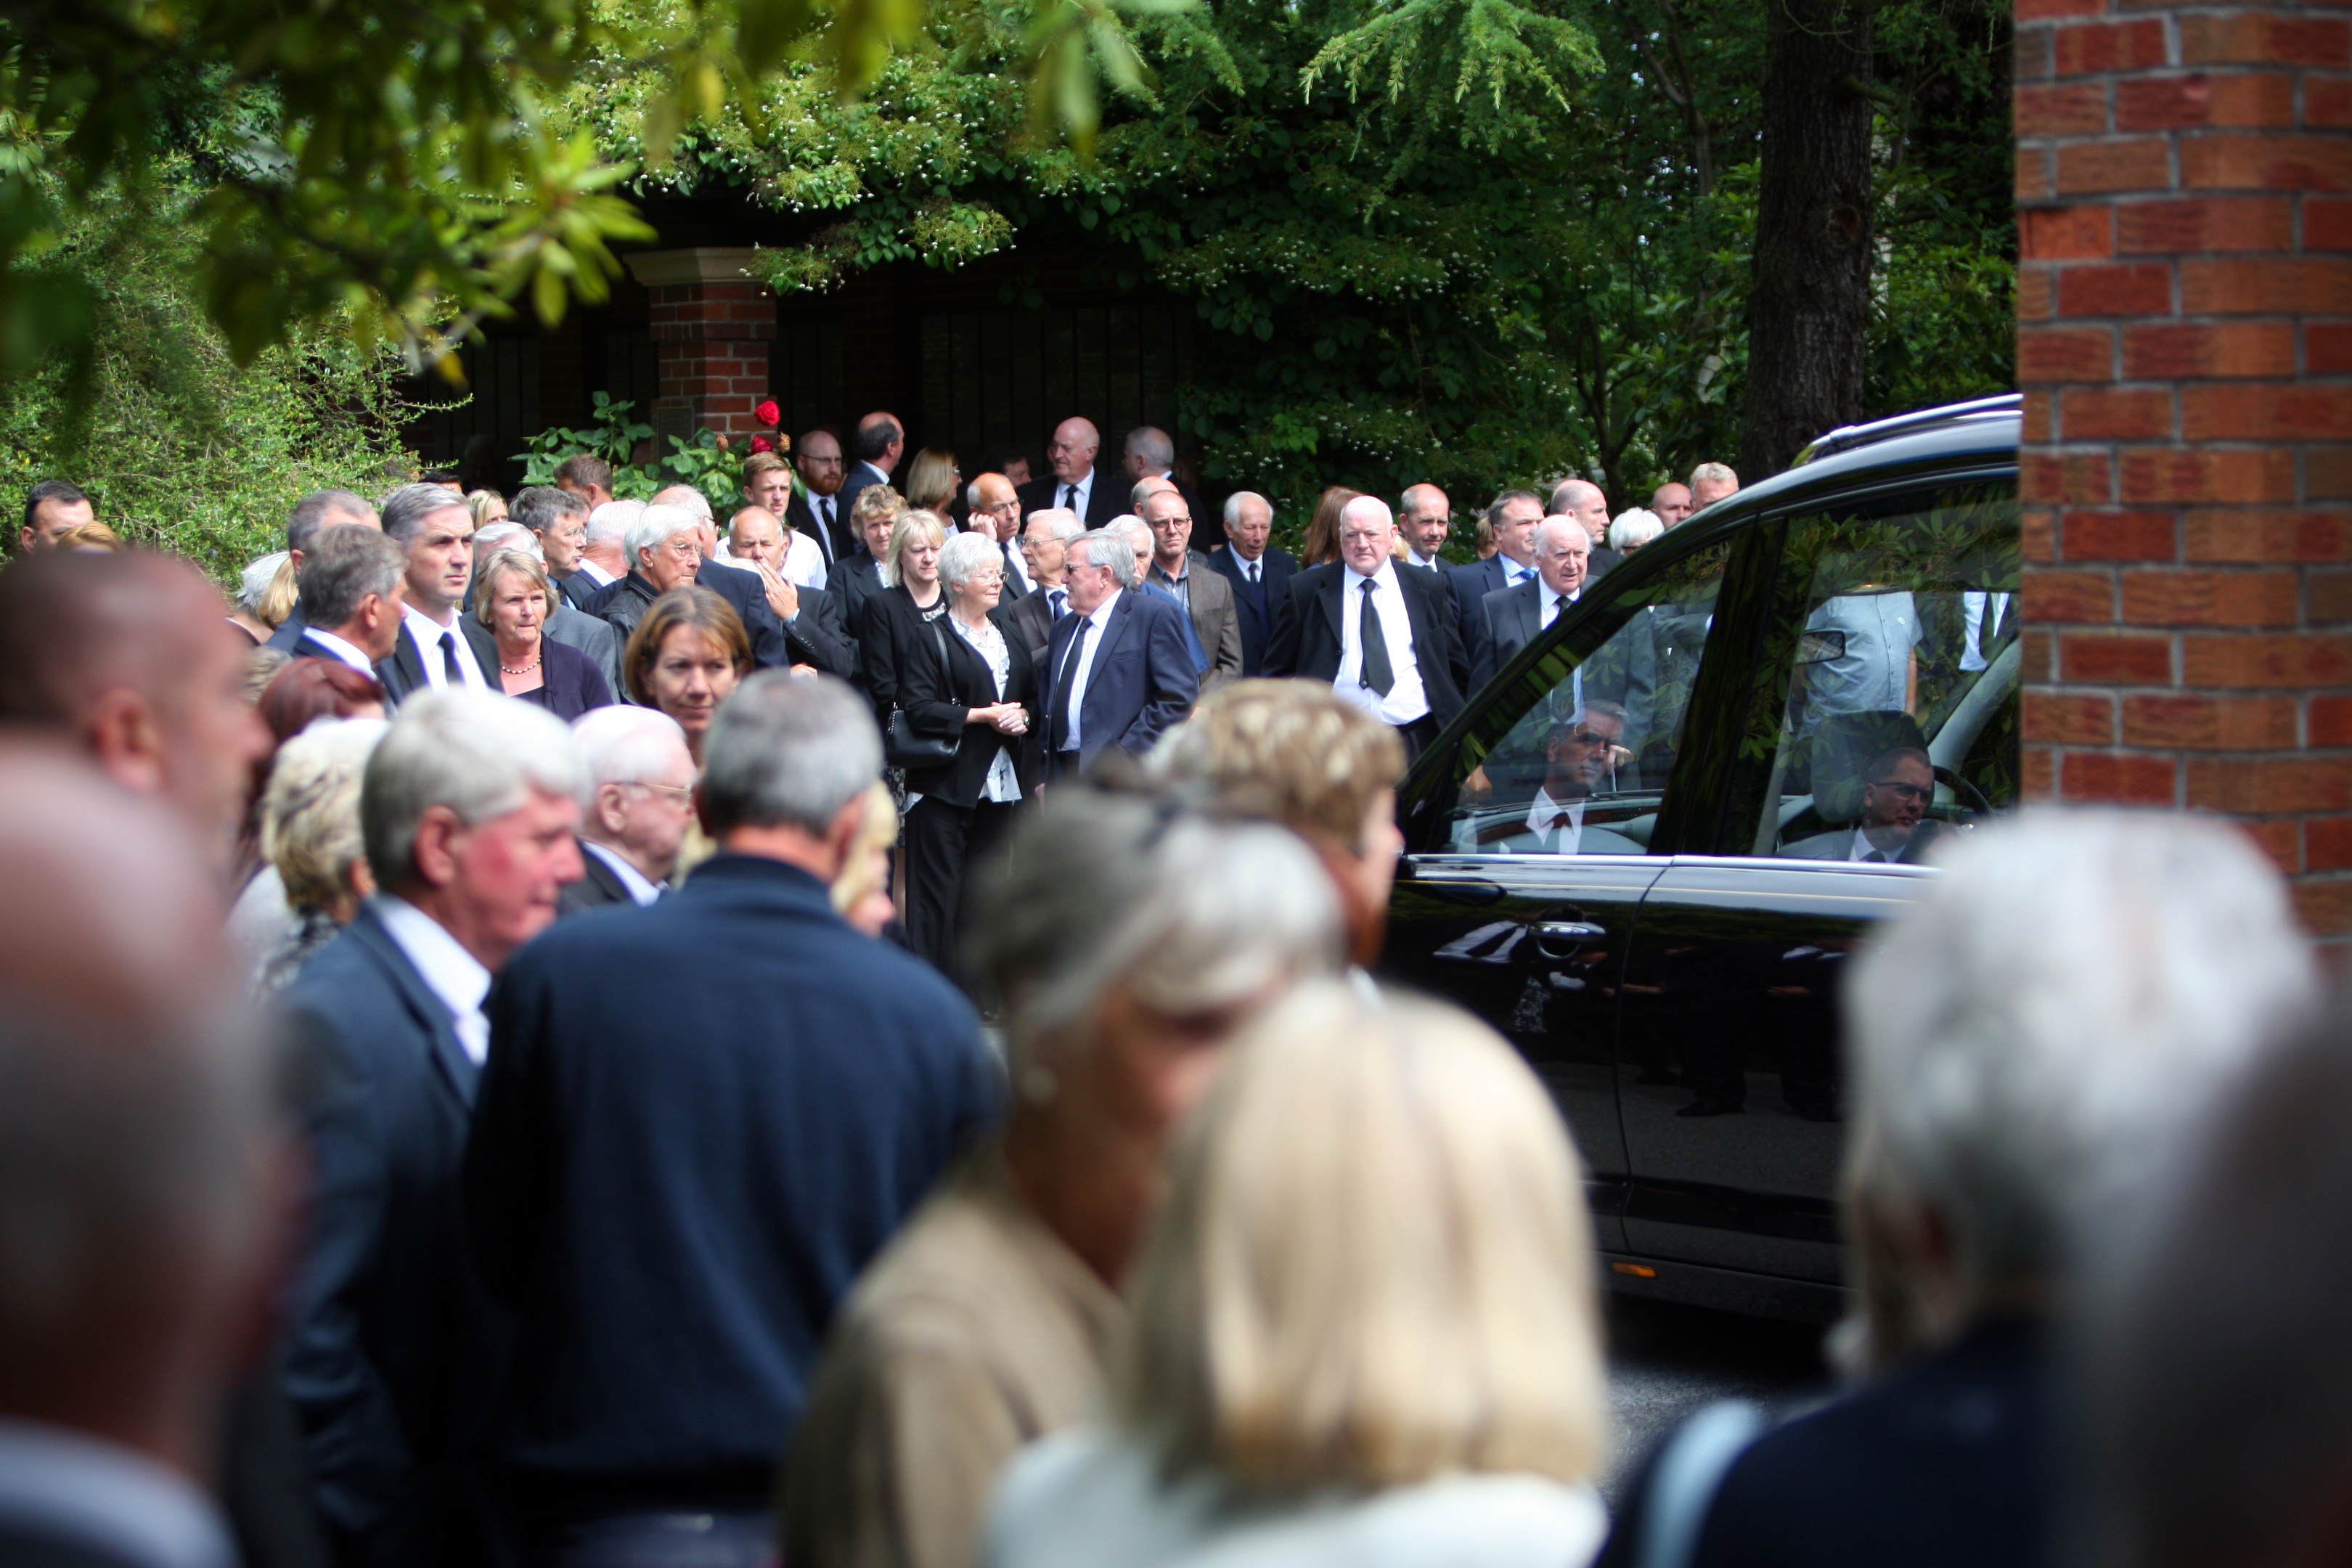 Hundreds of mourners gathered to pay their respects.